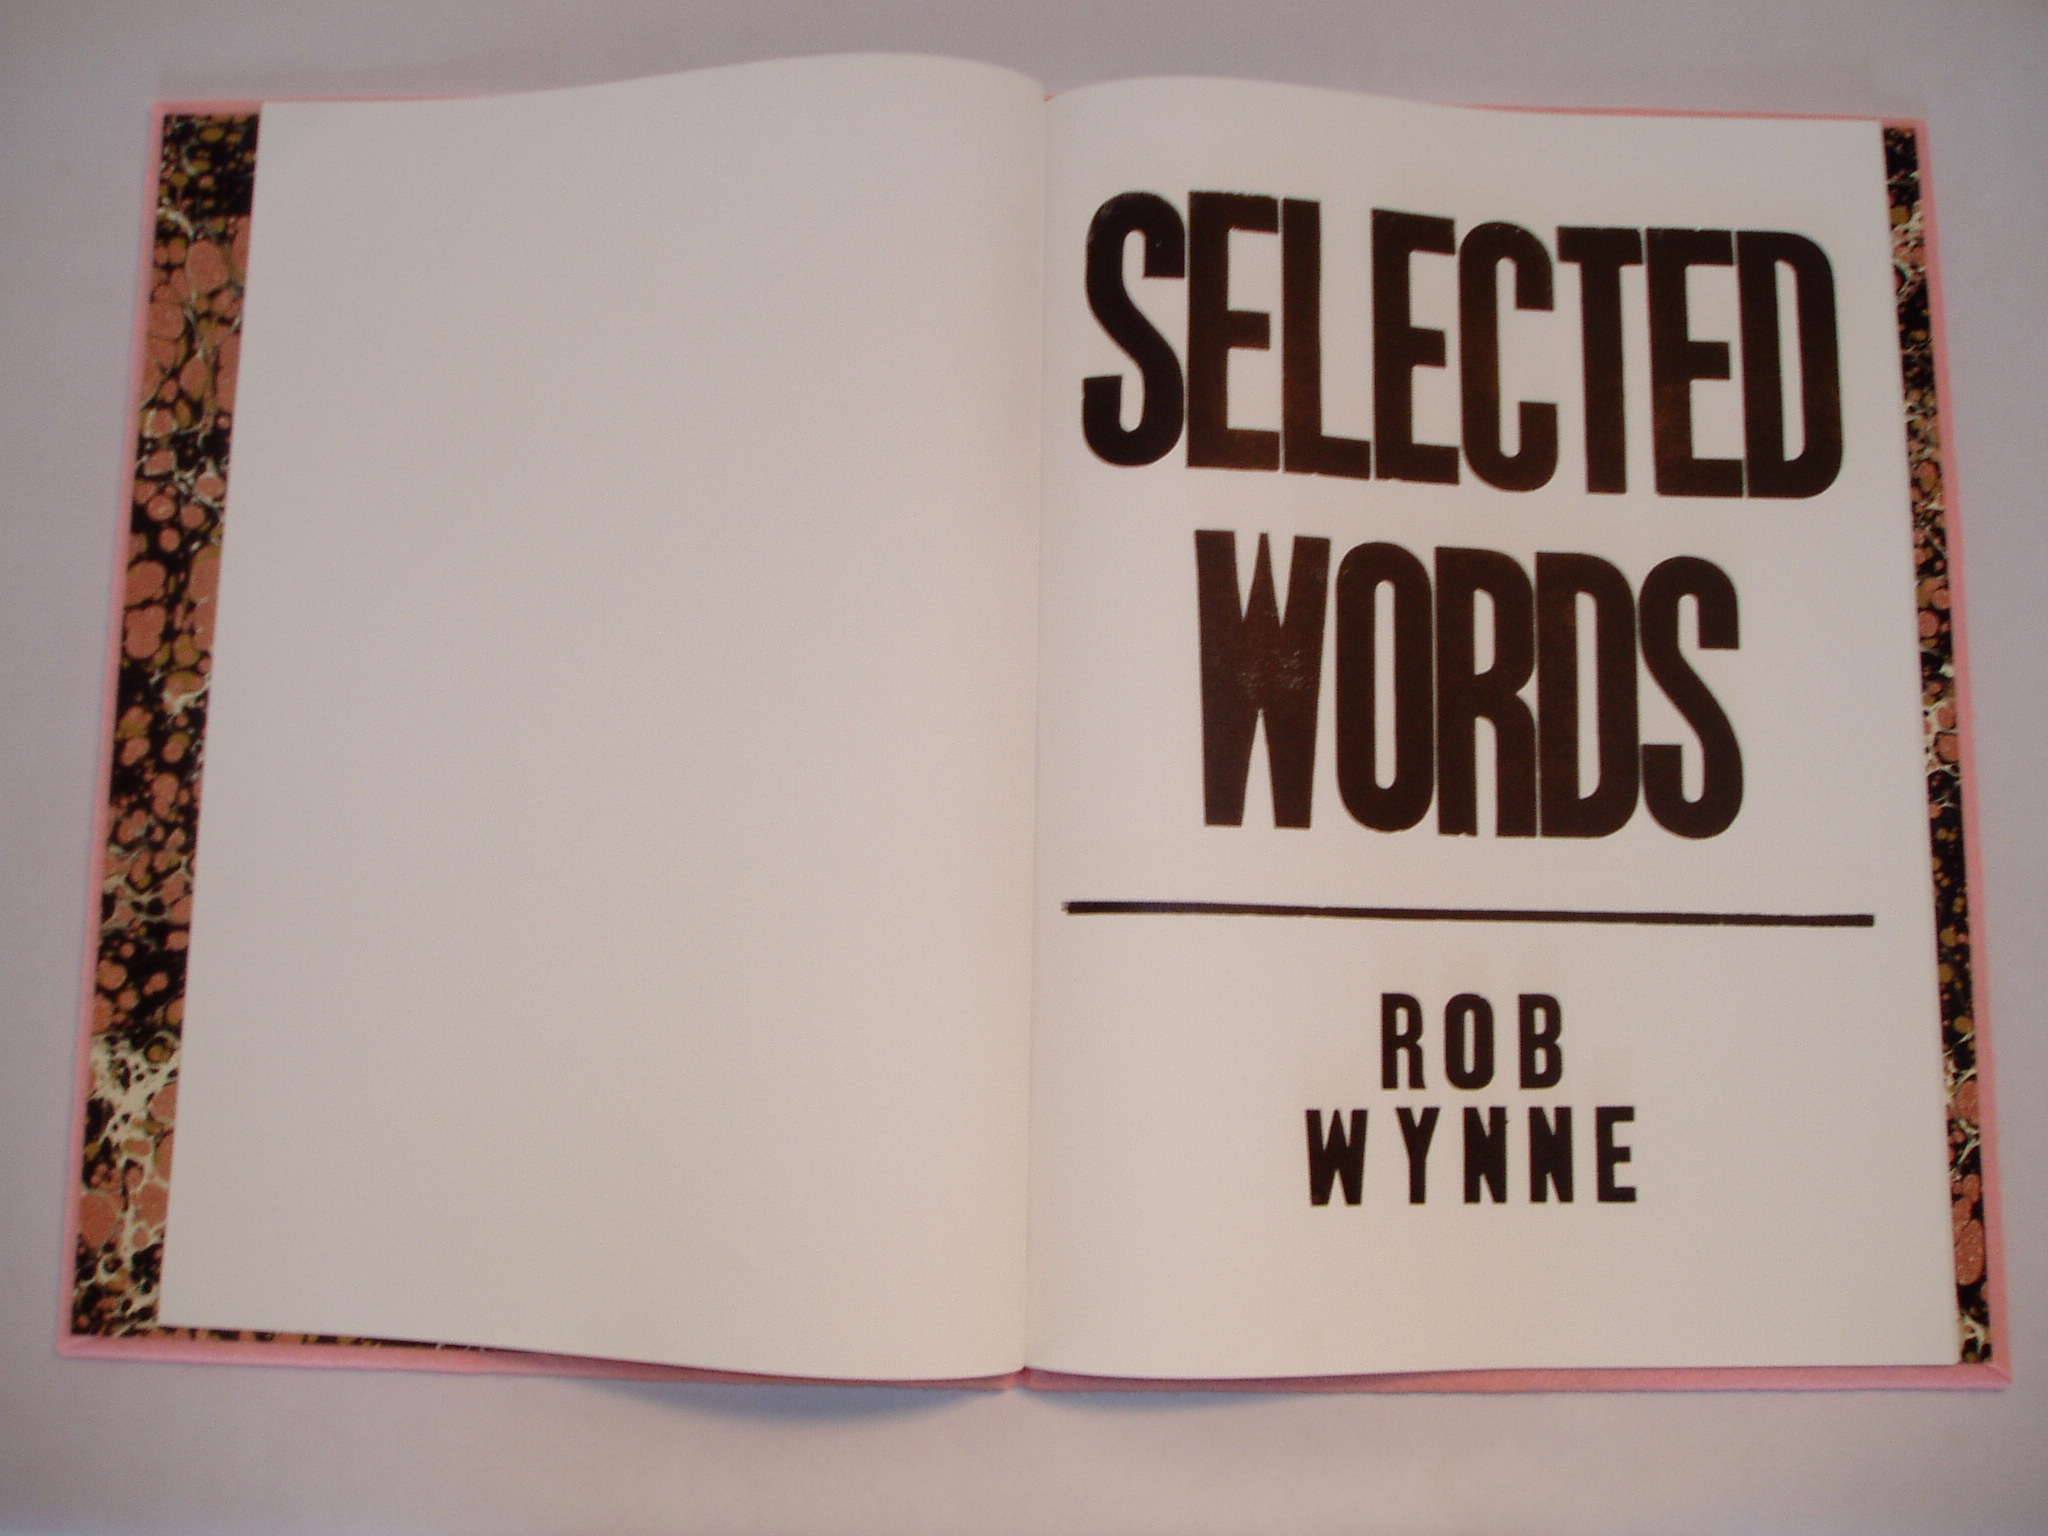 03. Selected Words title page.jpg